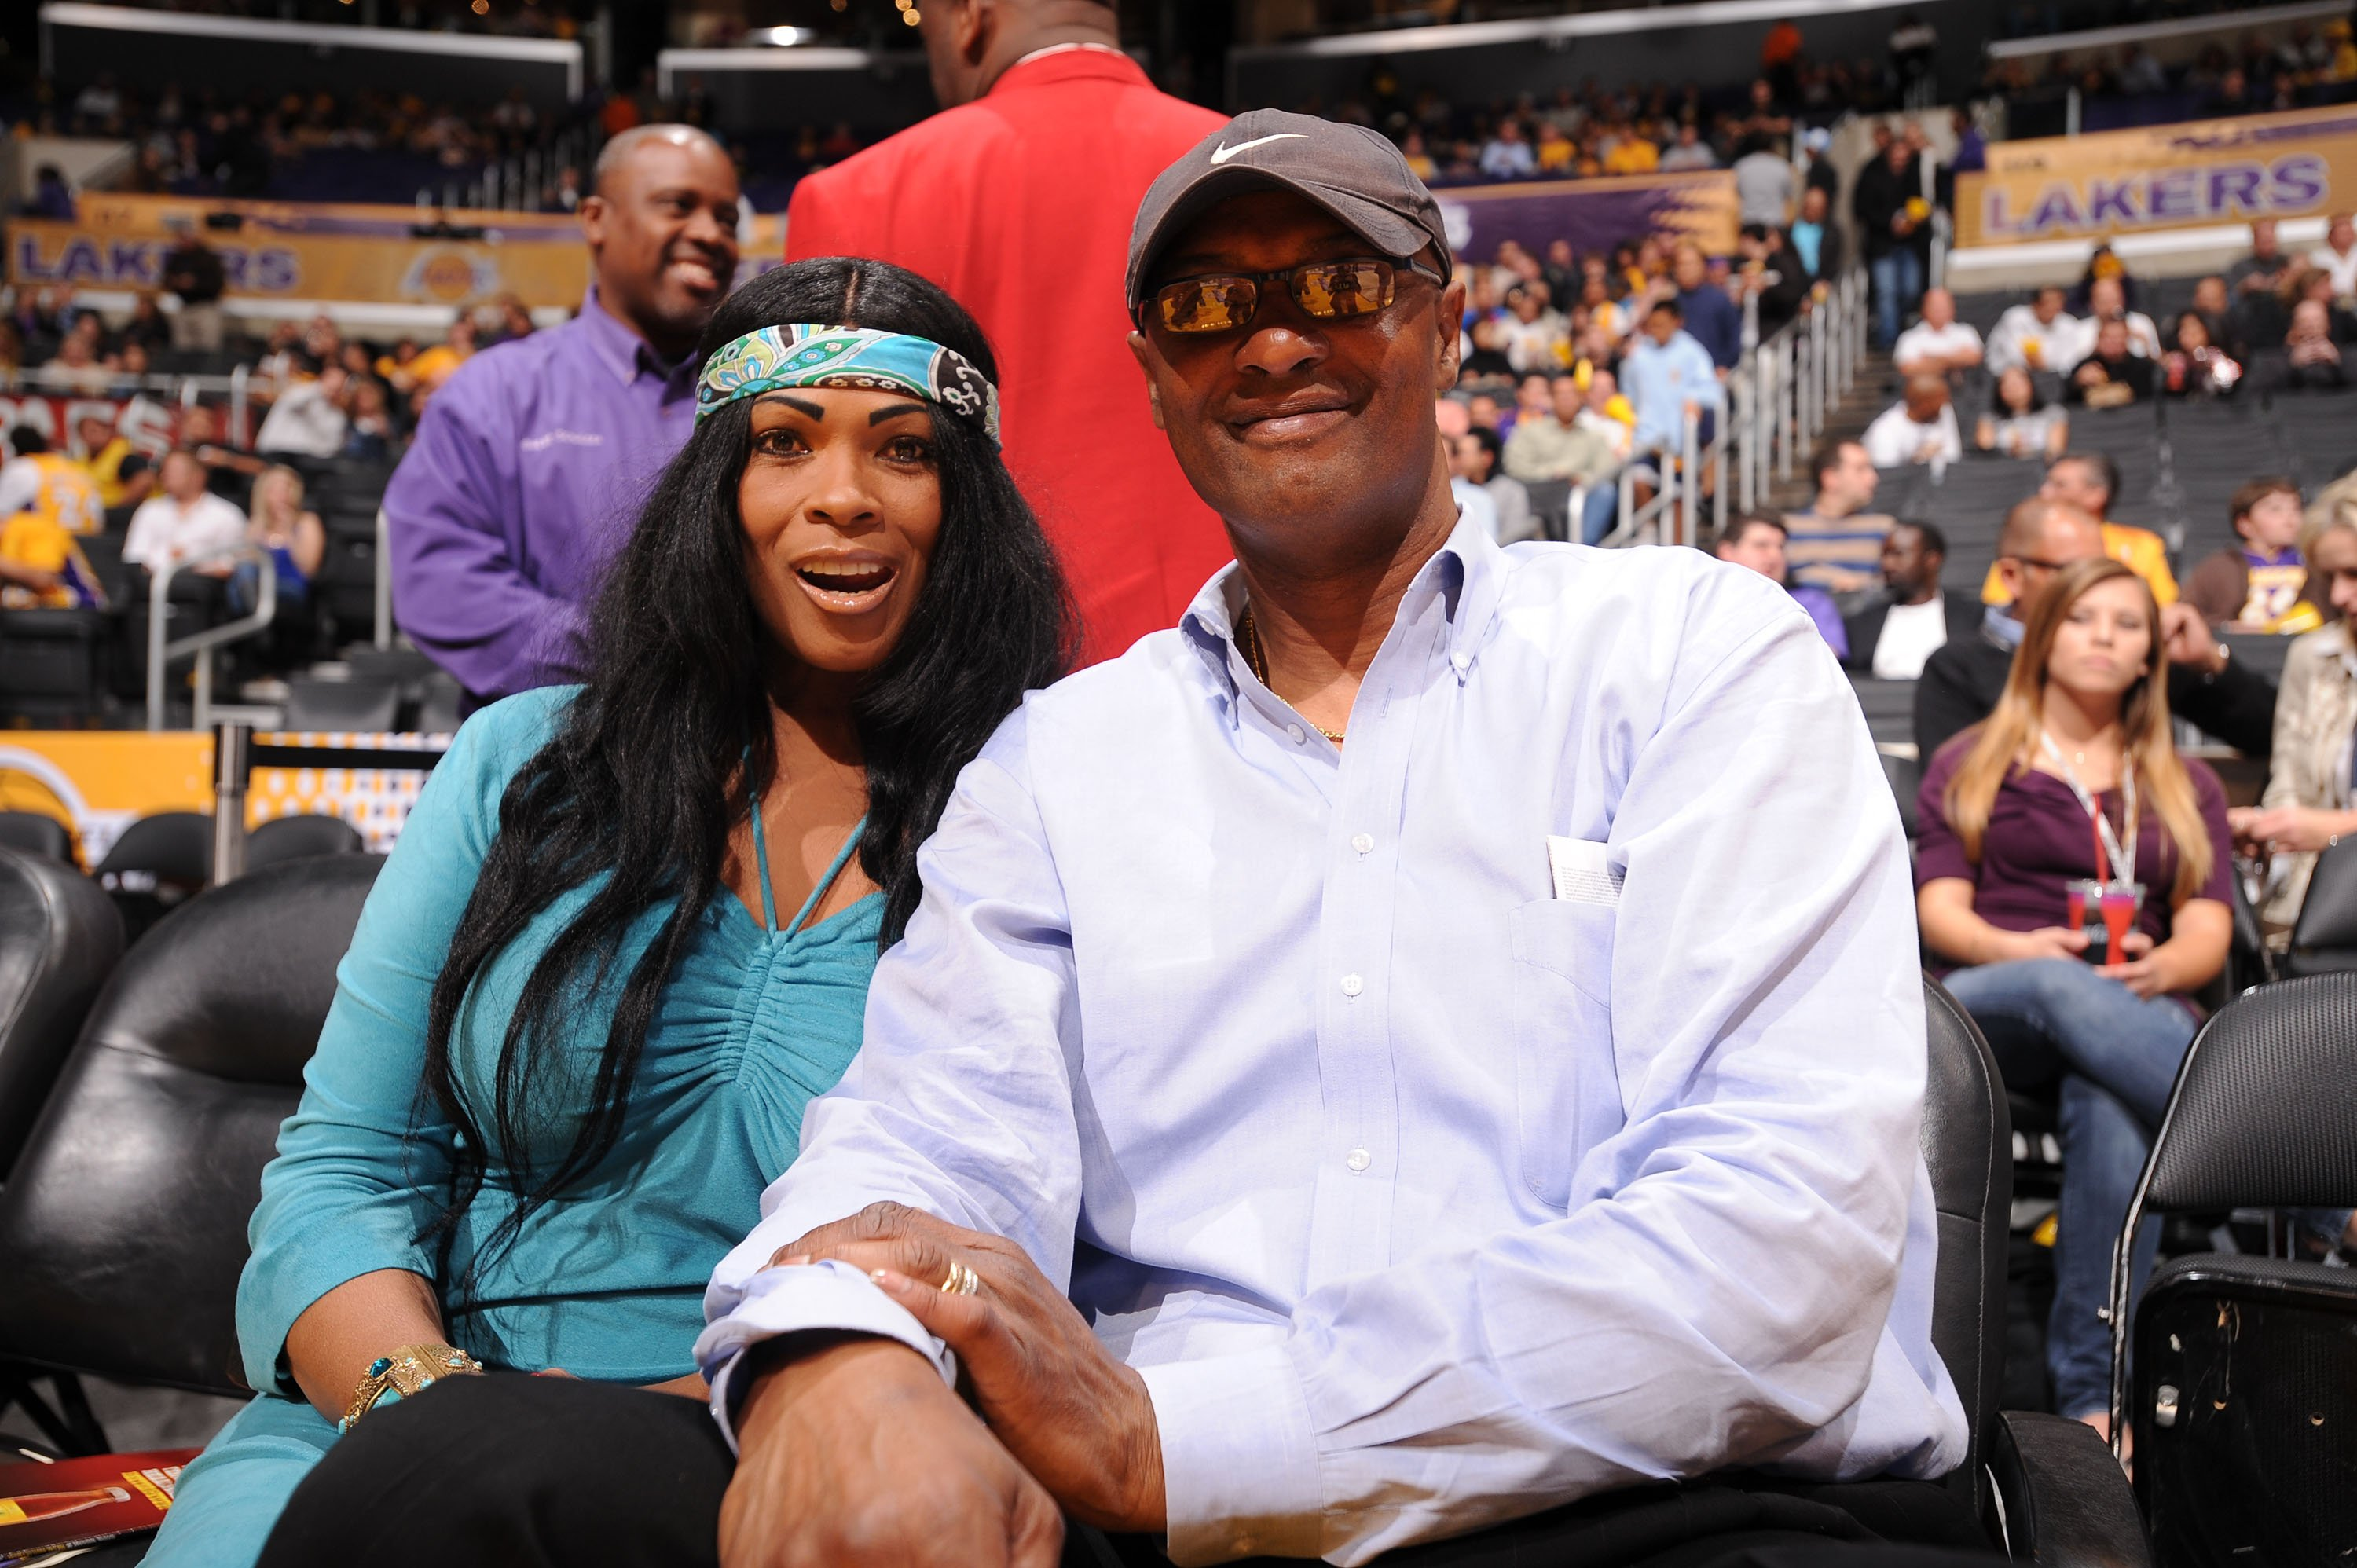 Pam and Joe Bryant at a game between the Oklahoma City Thunder and the Los Angeles Lakers on April 27, 2010 in California | Photo: Getty Images